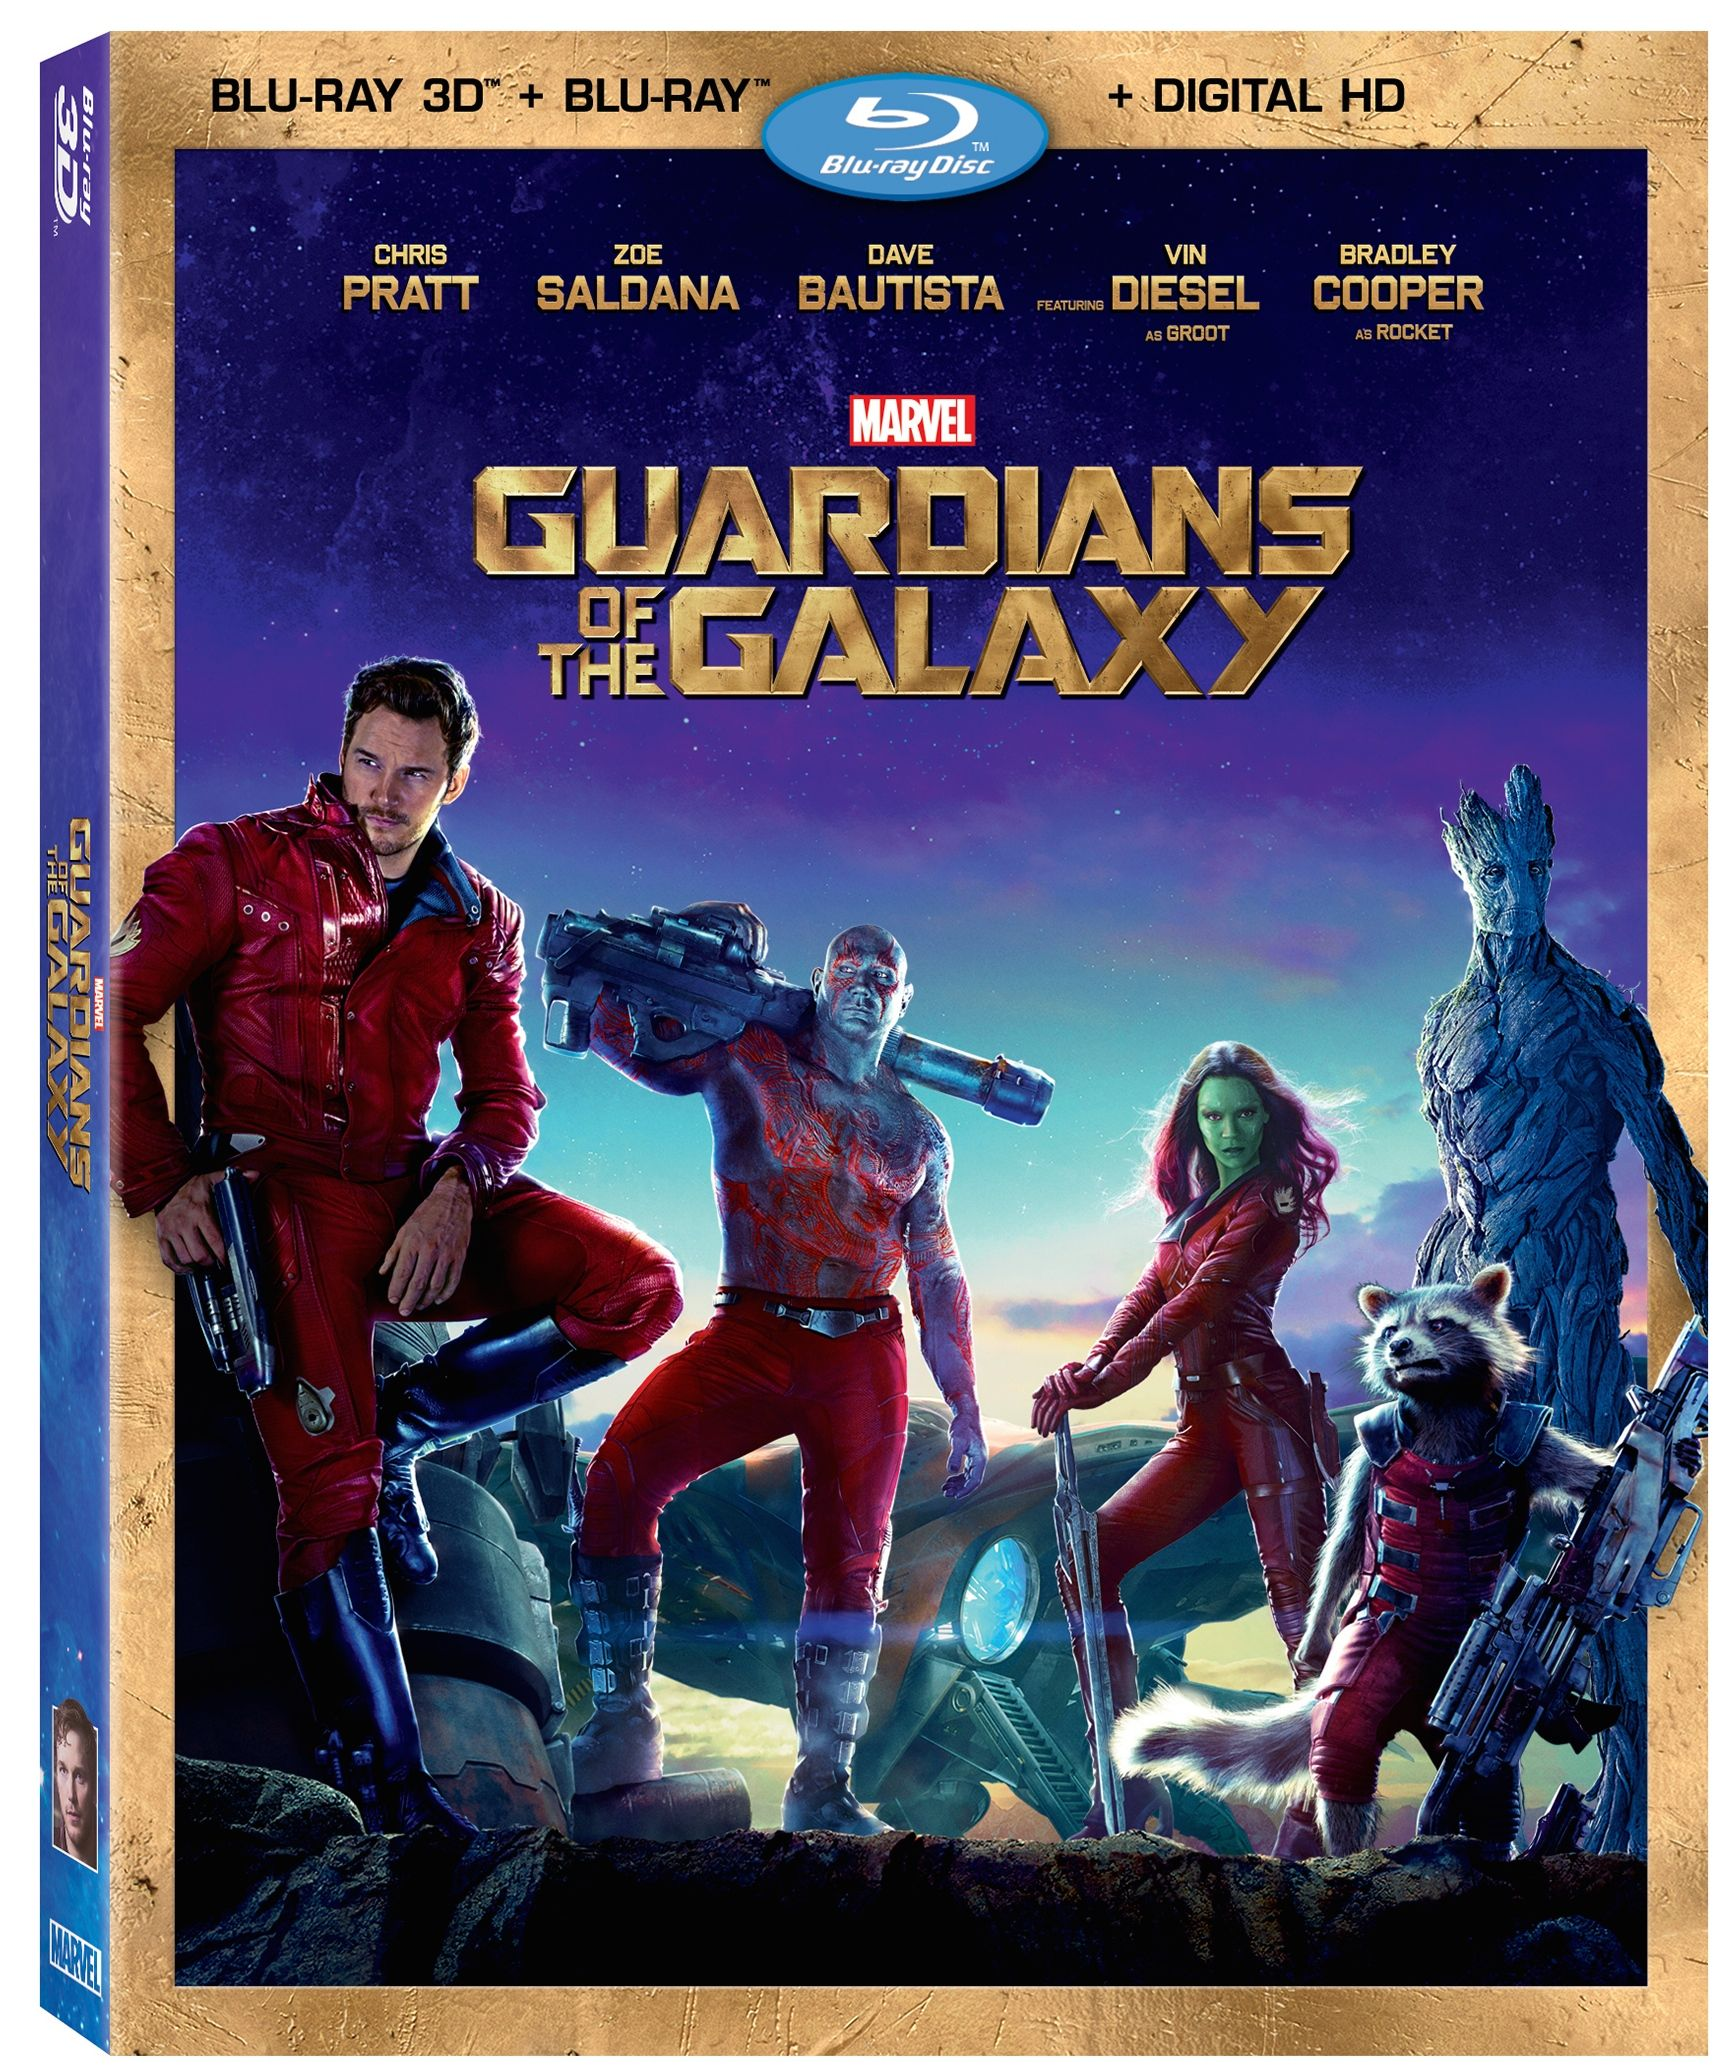 The guardians of the galaxy dvd amp blu ray have an avengers 2 sneak